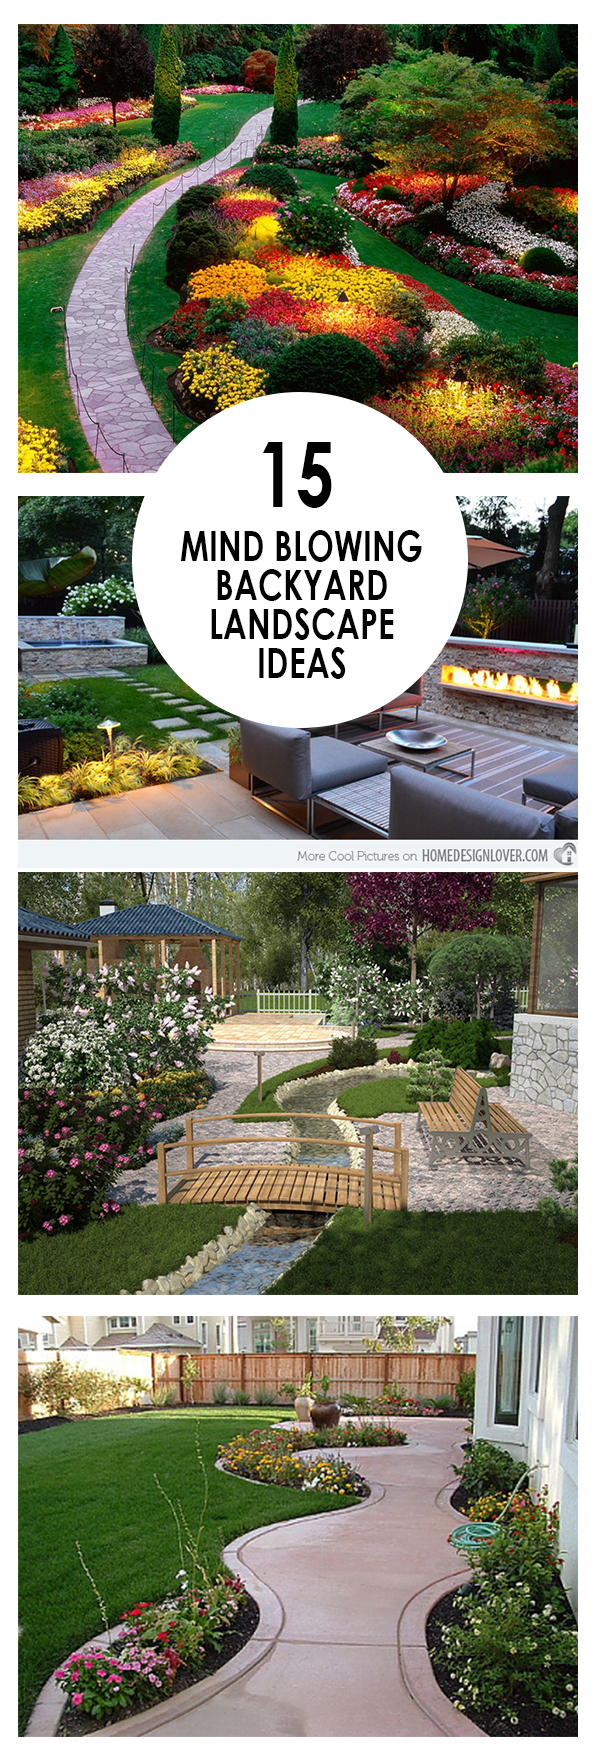 Backyard Landscaping, Landscape Inspiration, Landscape Ideas, DIY  Landscaping, Popular Pin, Gardening